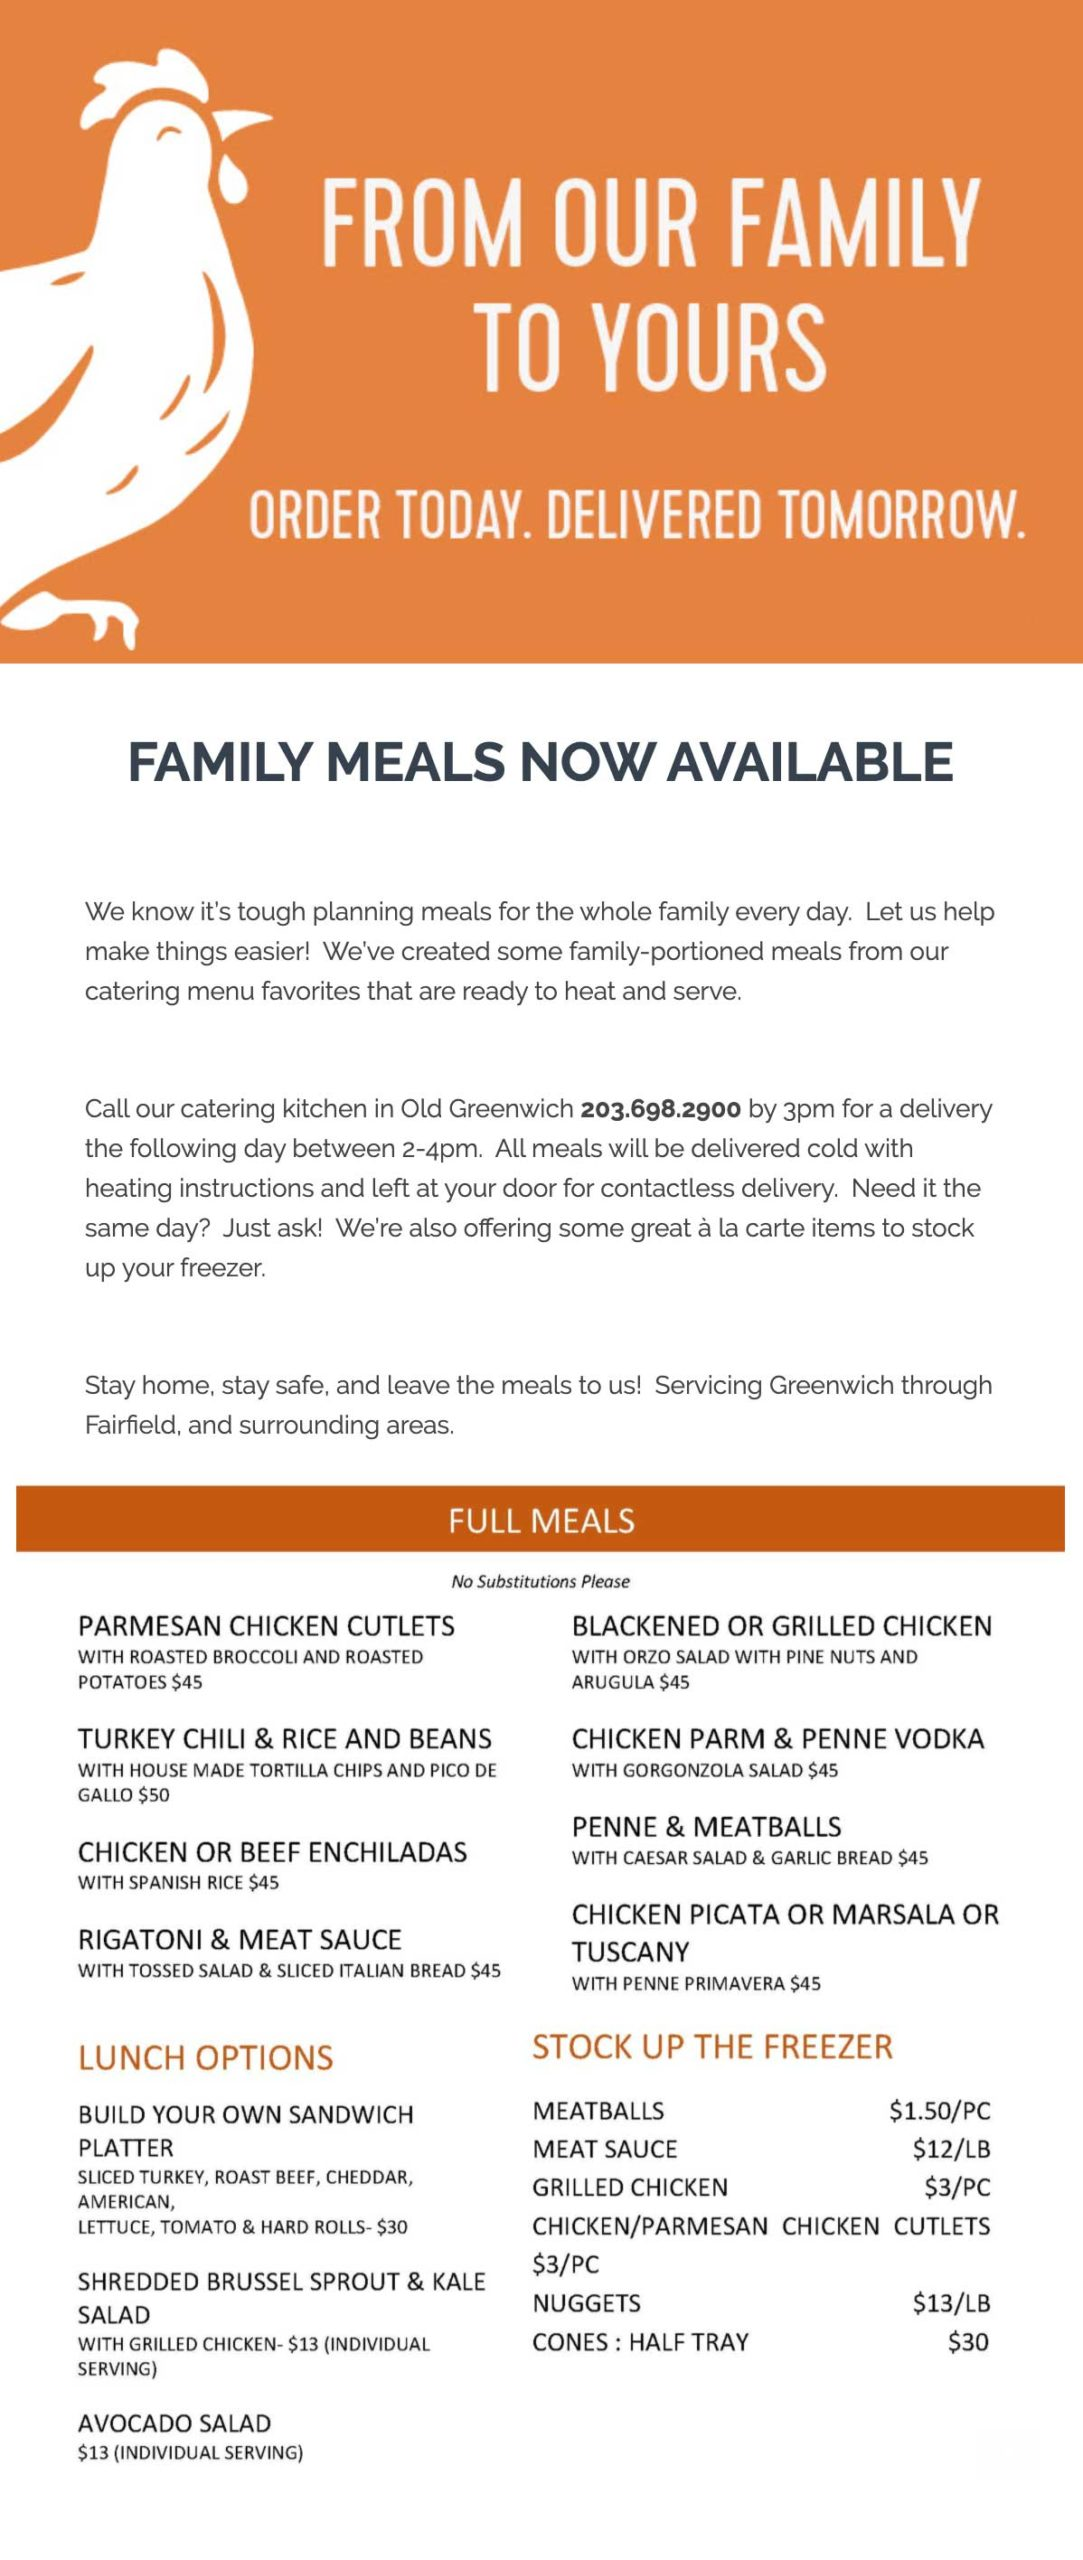 Garden Catering family meals email